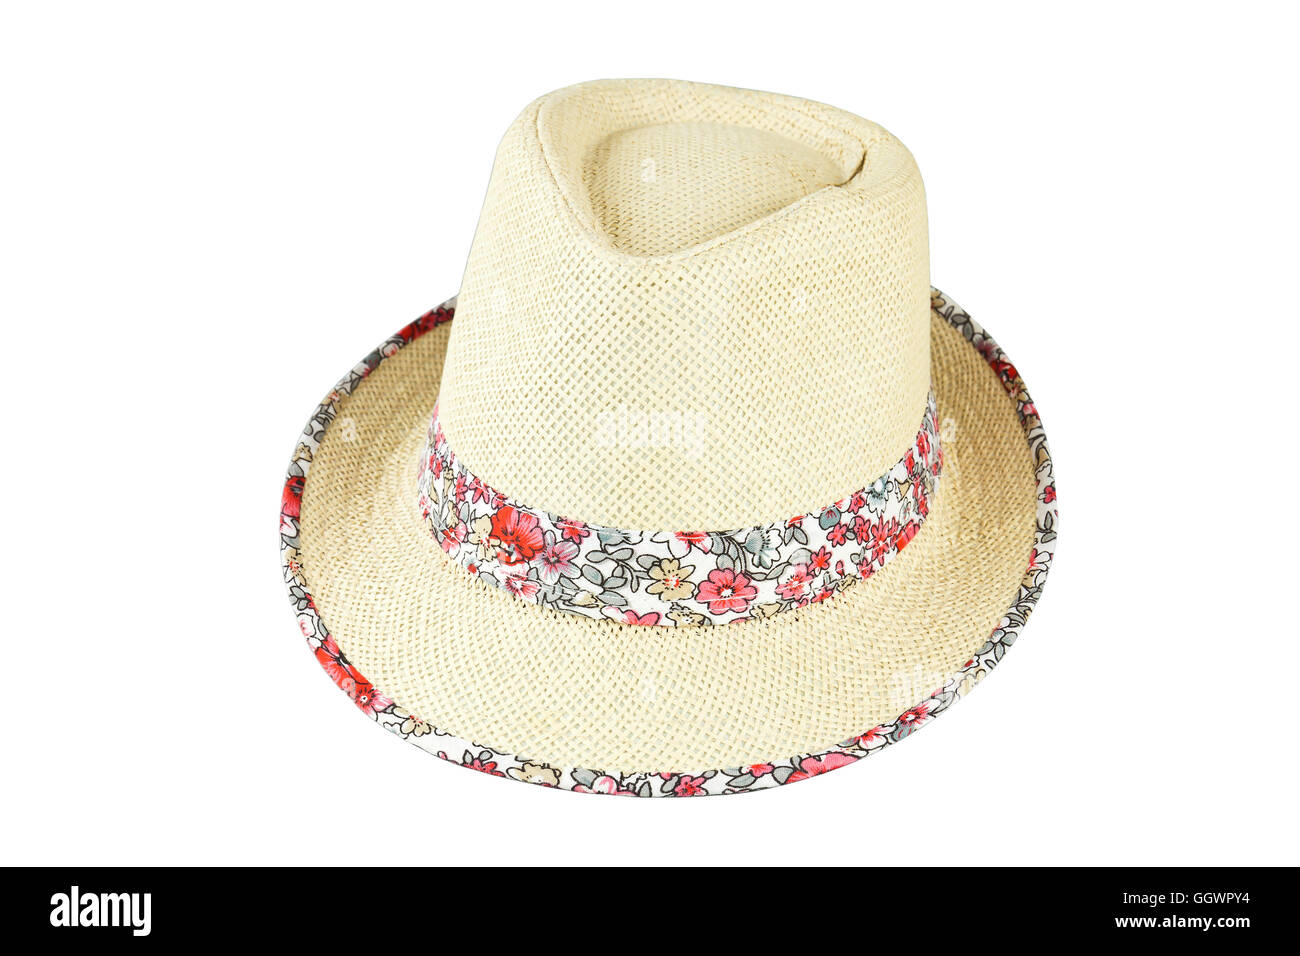 Beach straw hat isolated on white background Stock Photo